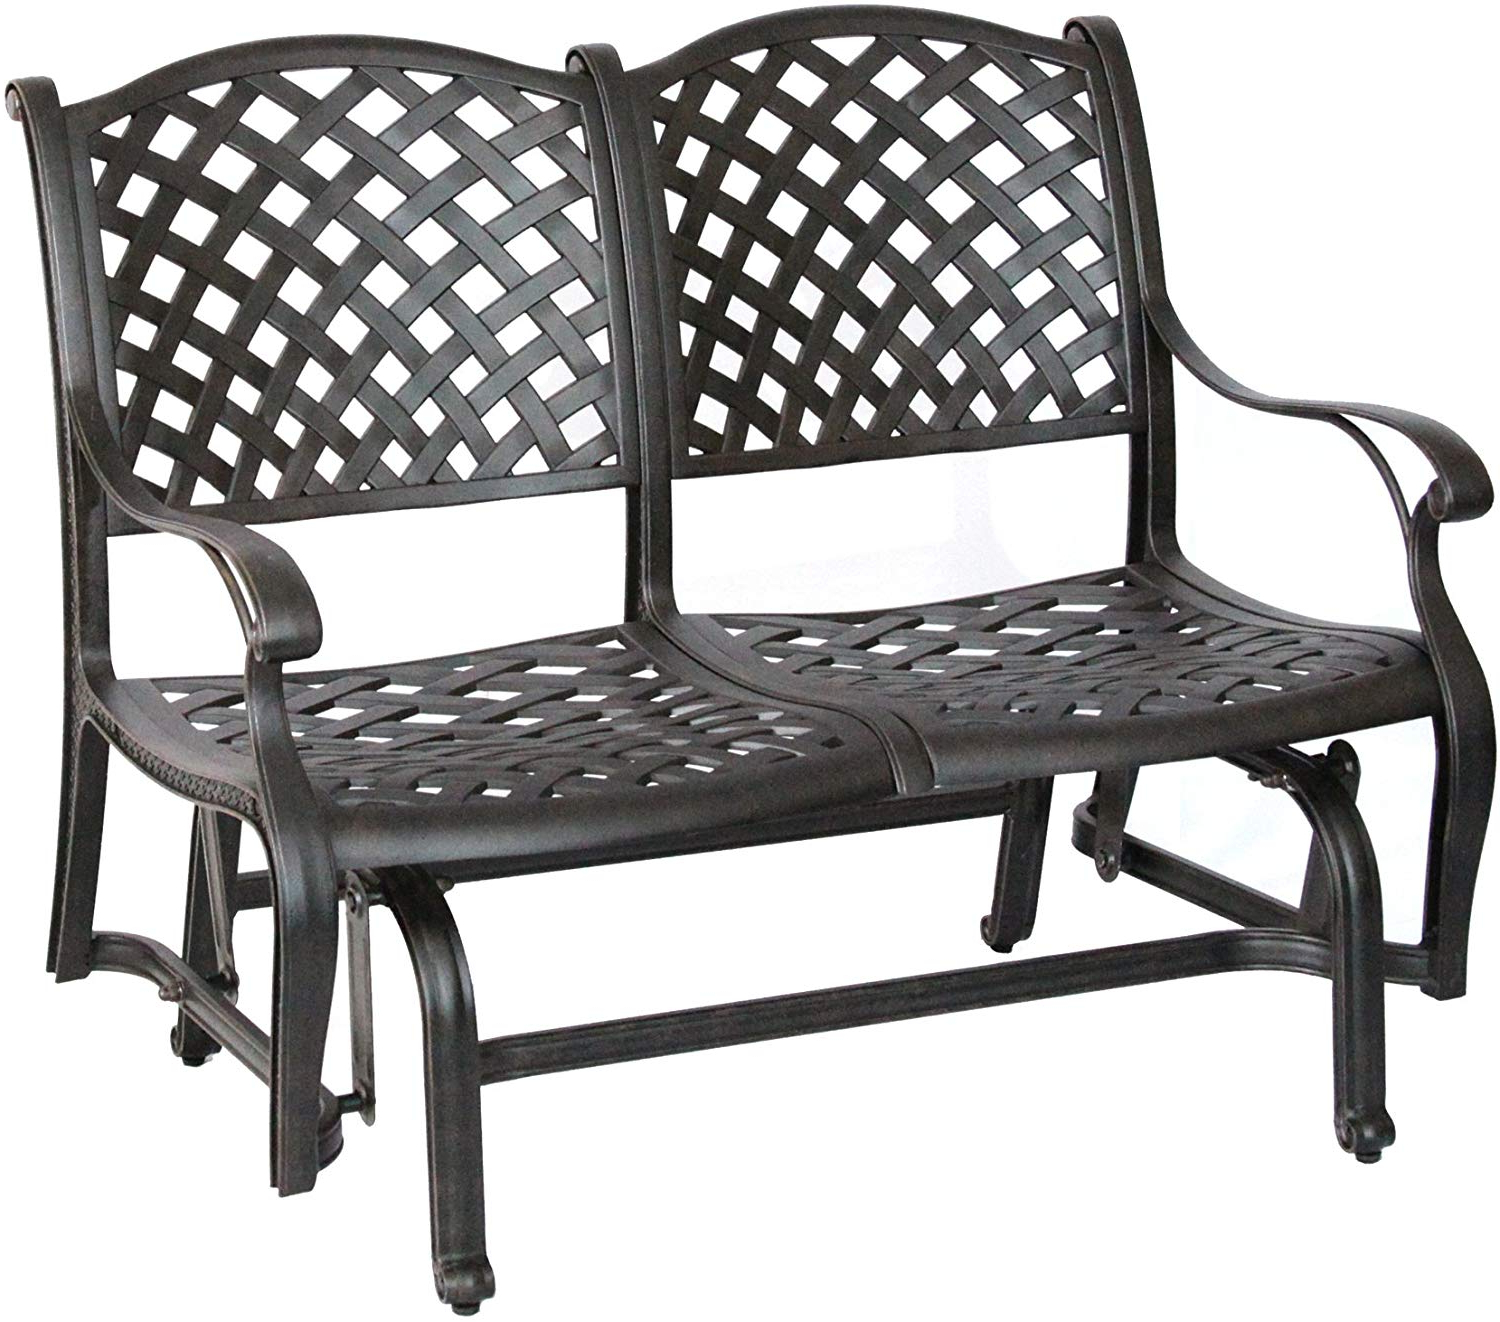 Newest 1 Person Antique Black Steel Outdoor Gliders Pertaining To Darlee Nassau Cast Aluminum Bench Glider With Seat Cushion, Antique Bronze Finish (View 16 of 30)